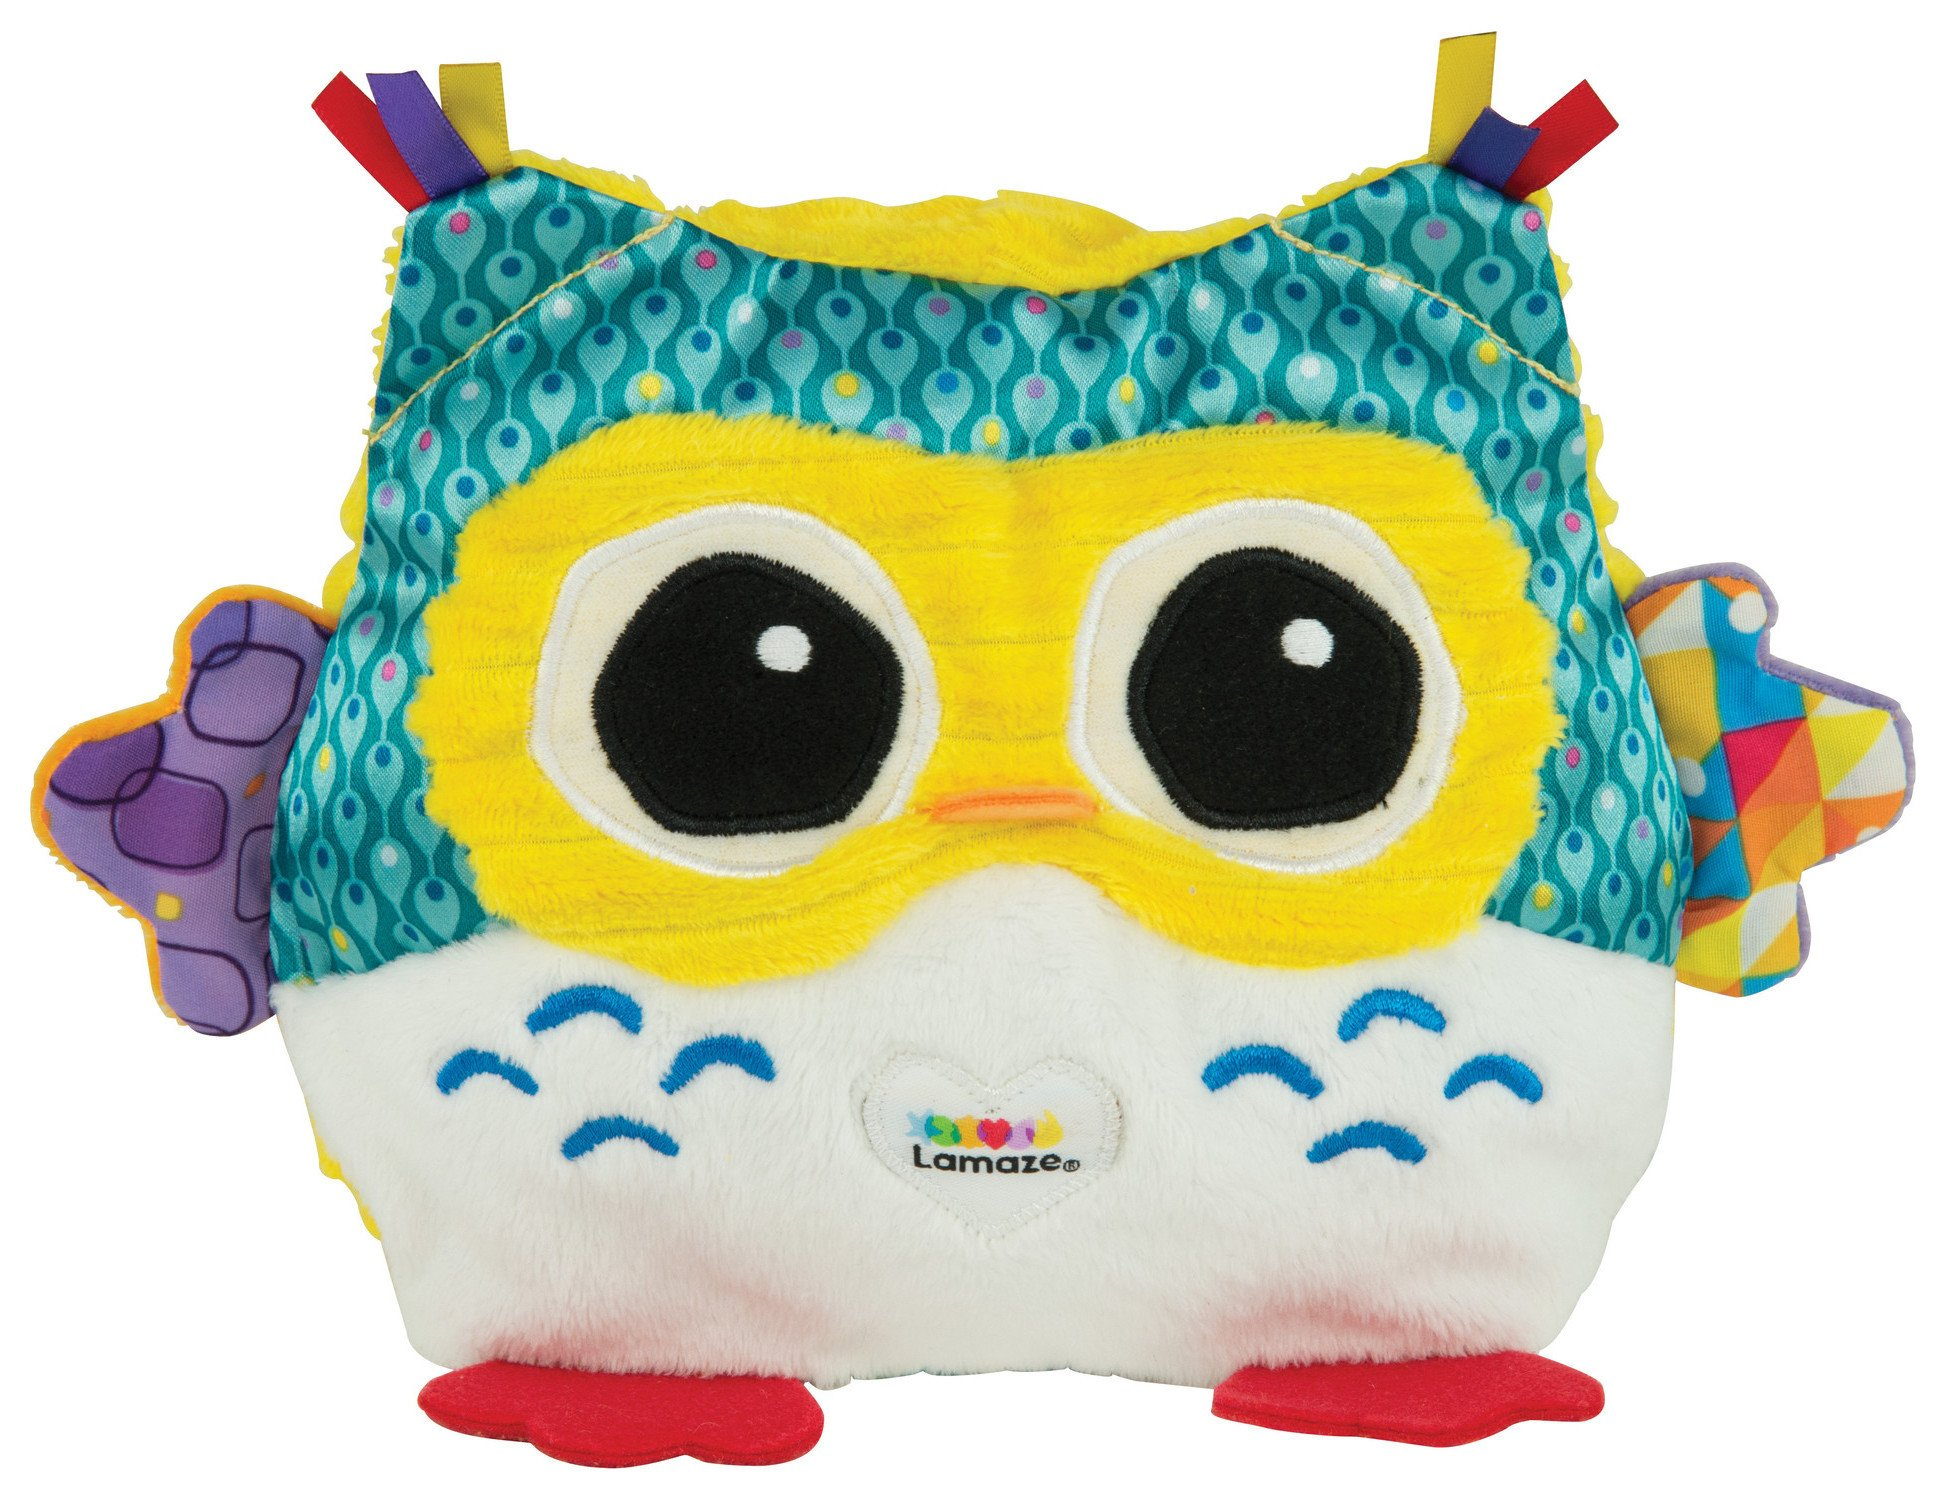 Image of Lamaze Night Night Owl Nightlight.